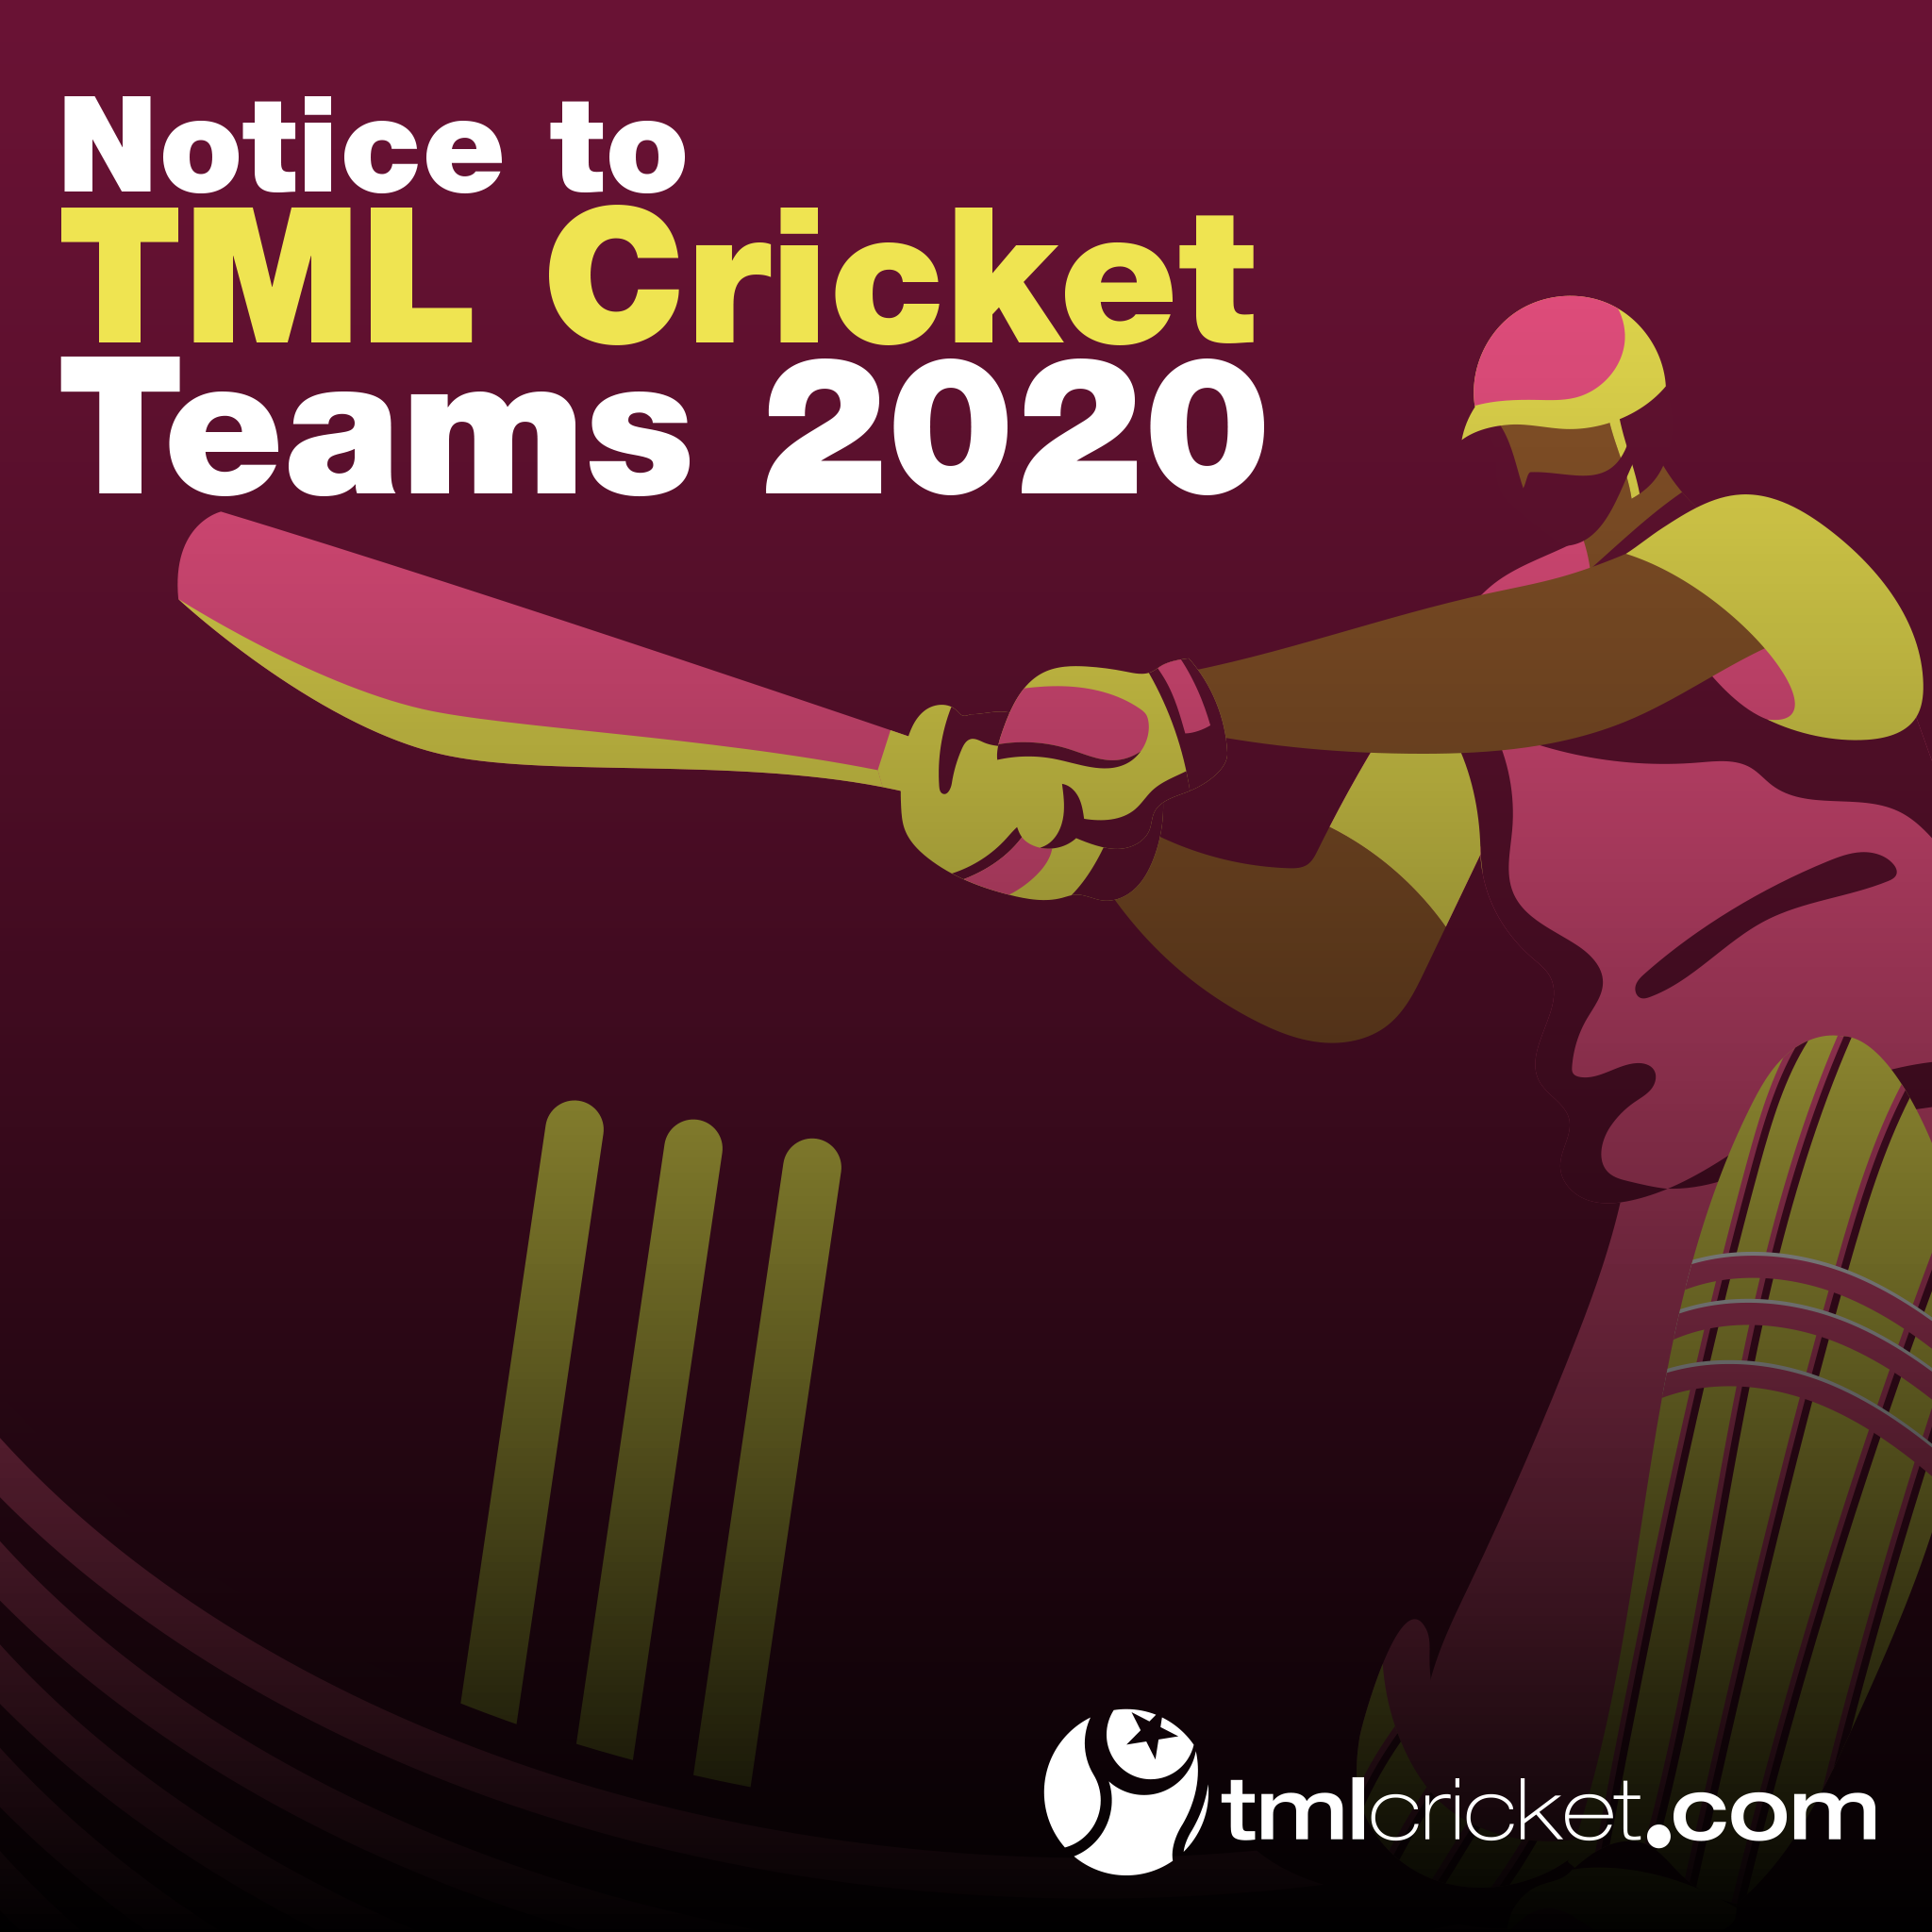 Notice to TML Cricket Teams 2020